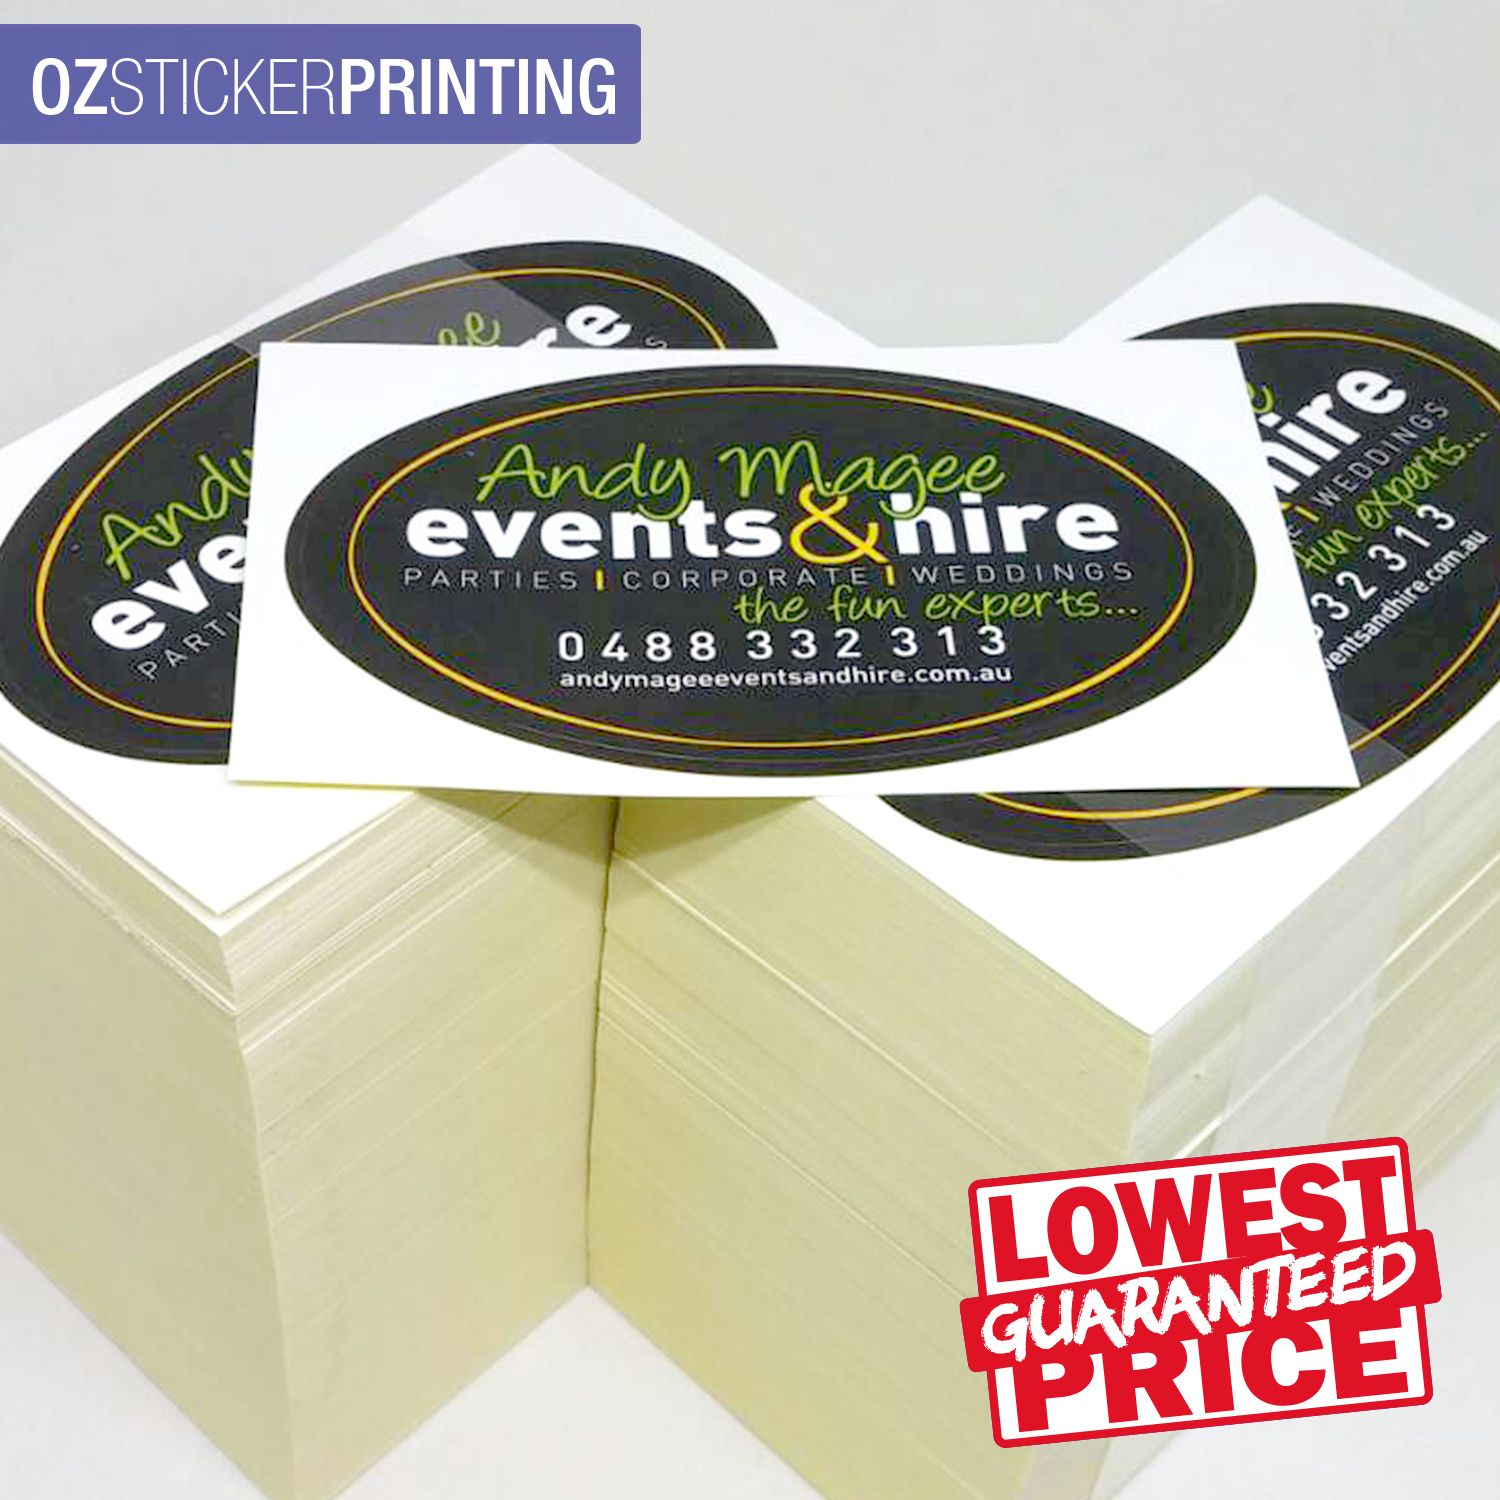 We print world class quality of custom made stickers all over australia come enquire from us today best prices guaranteed